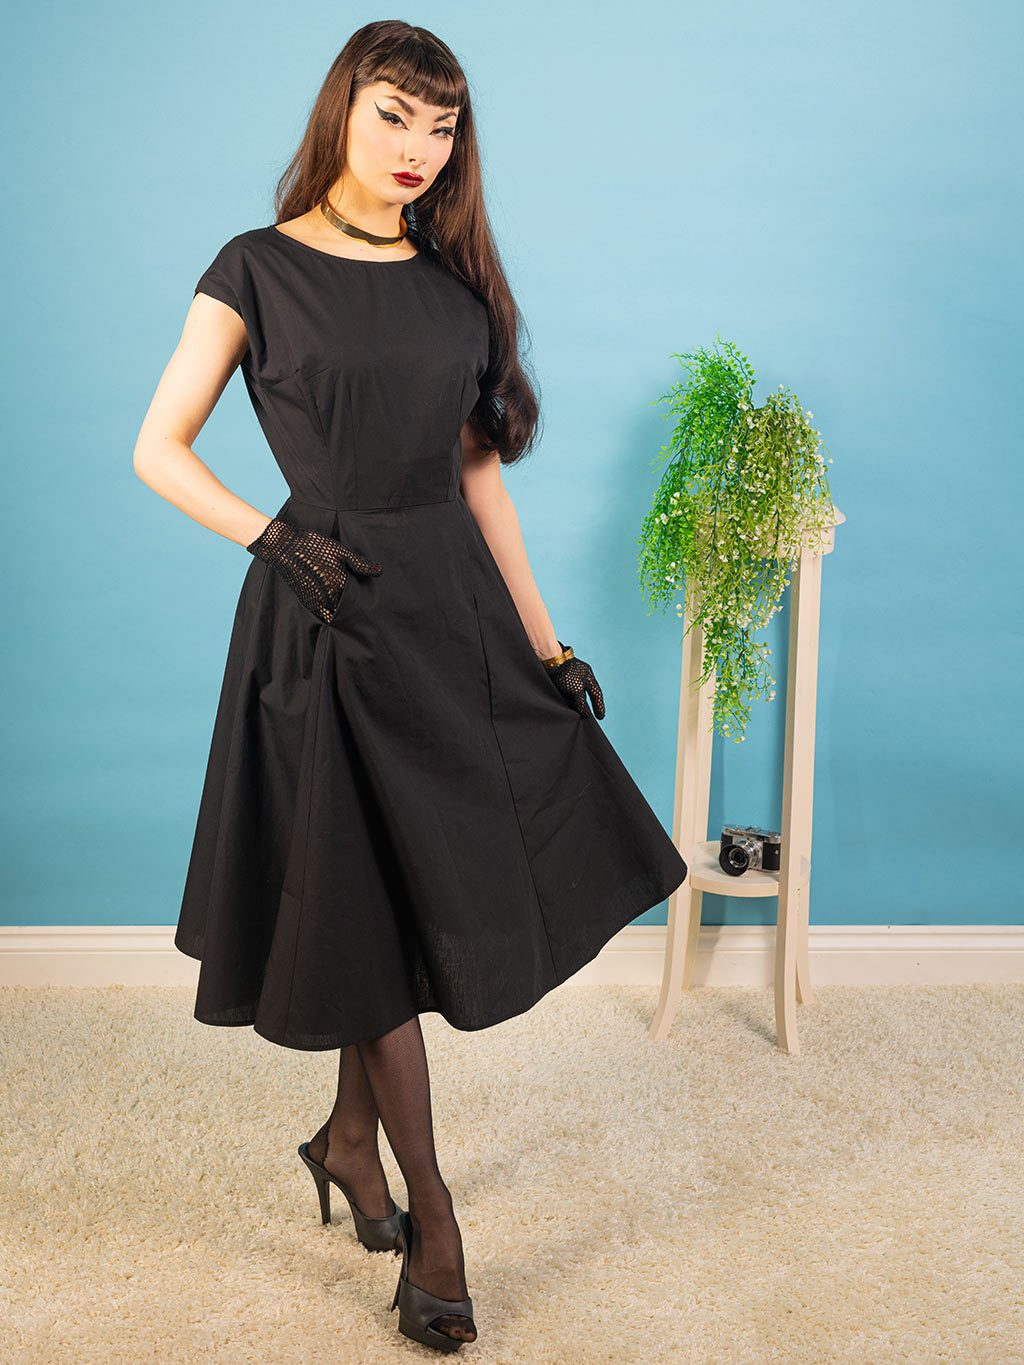 A classic little black vintage inspired dress by What Katie Did.